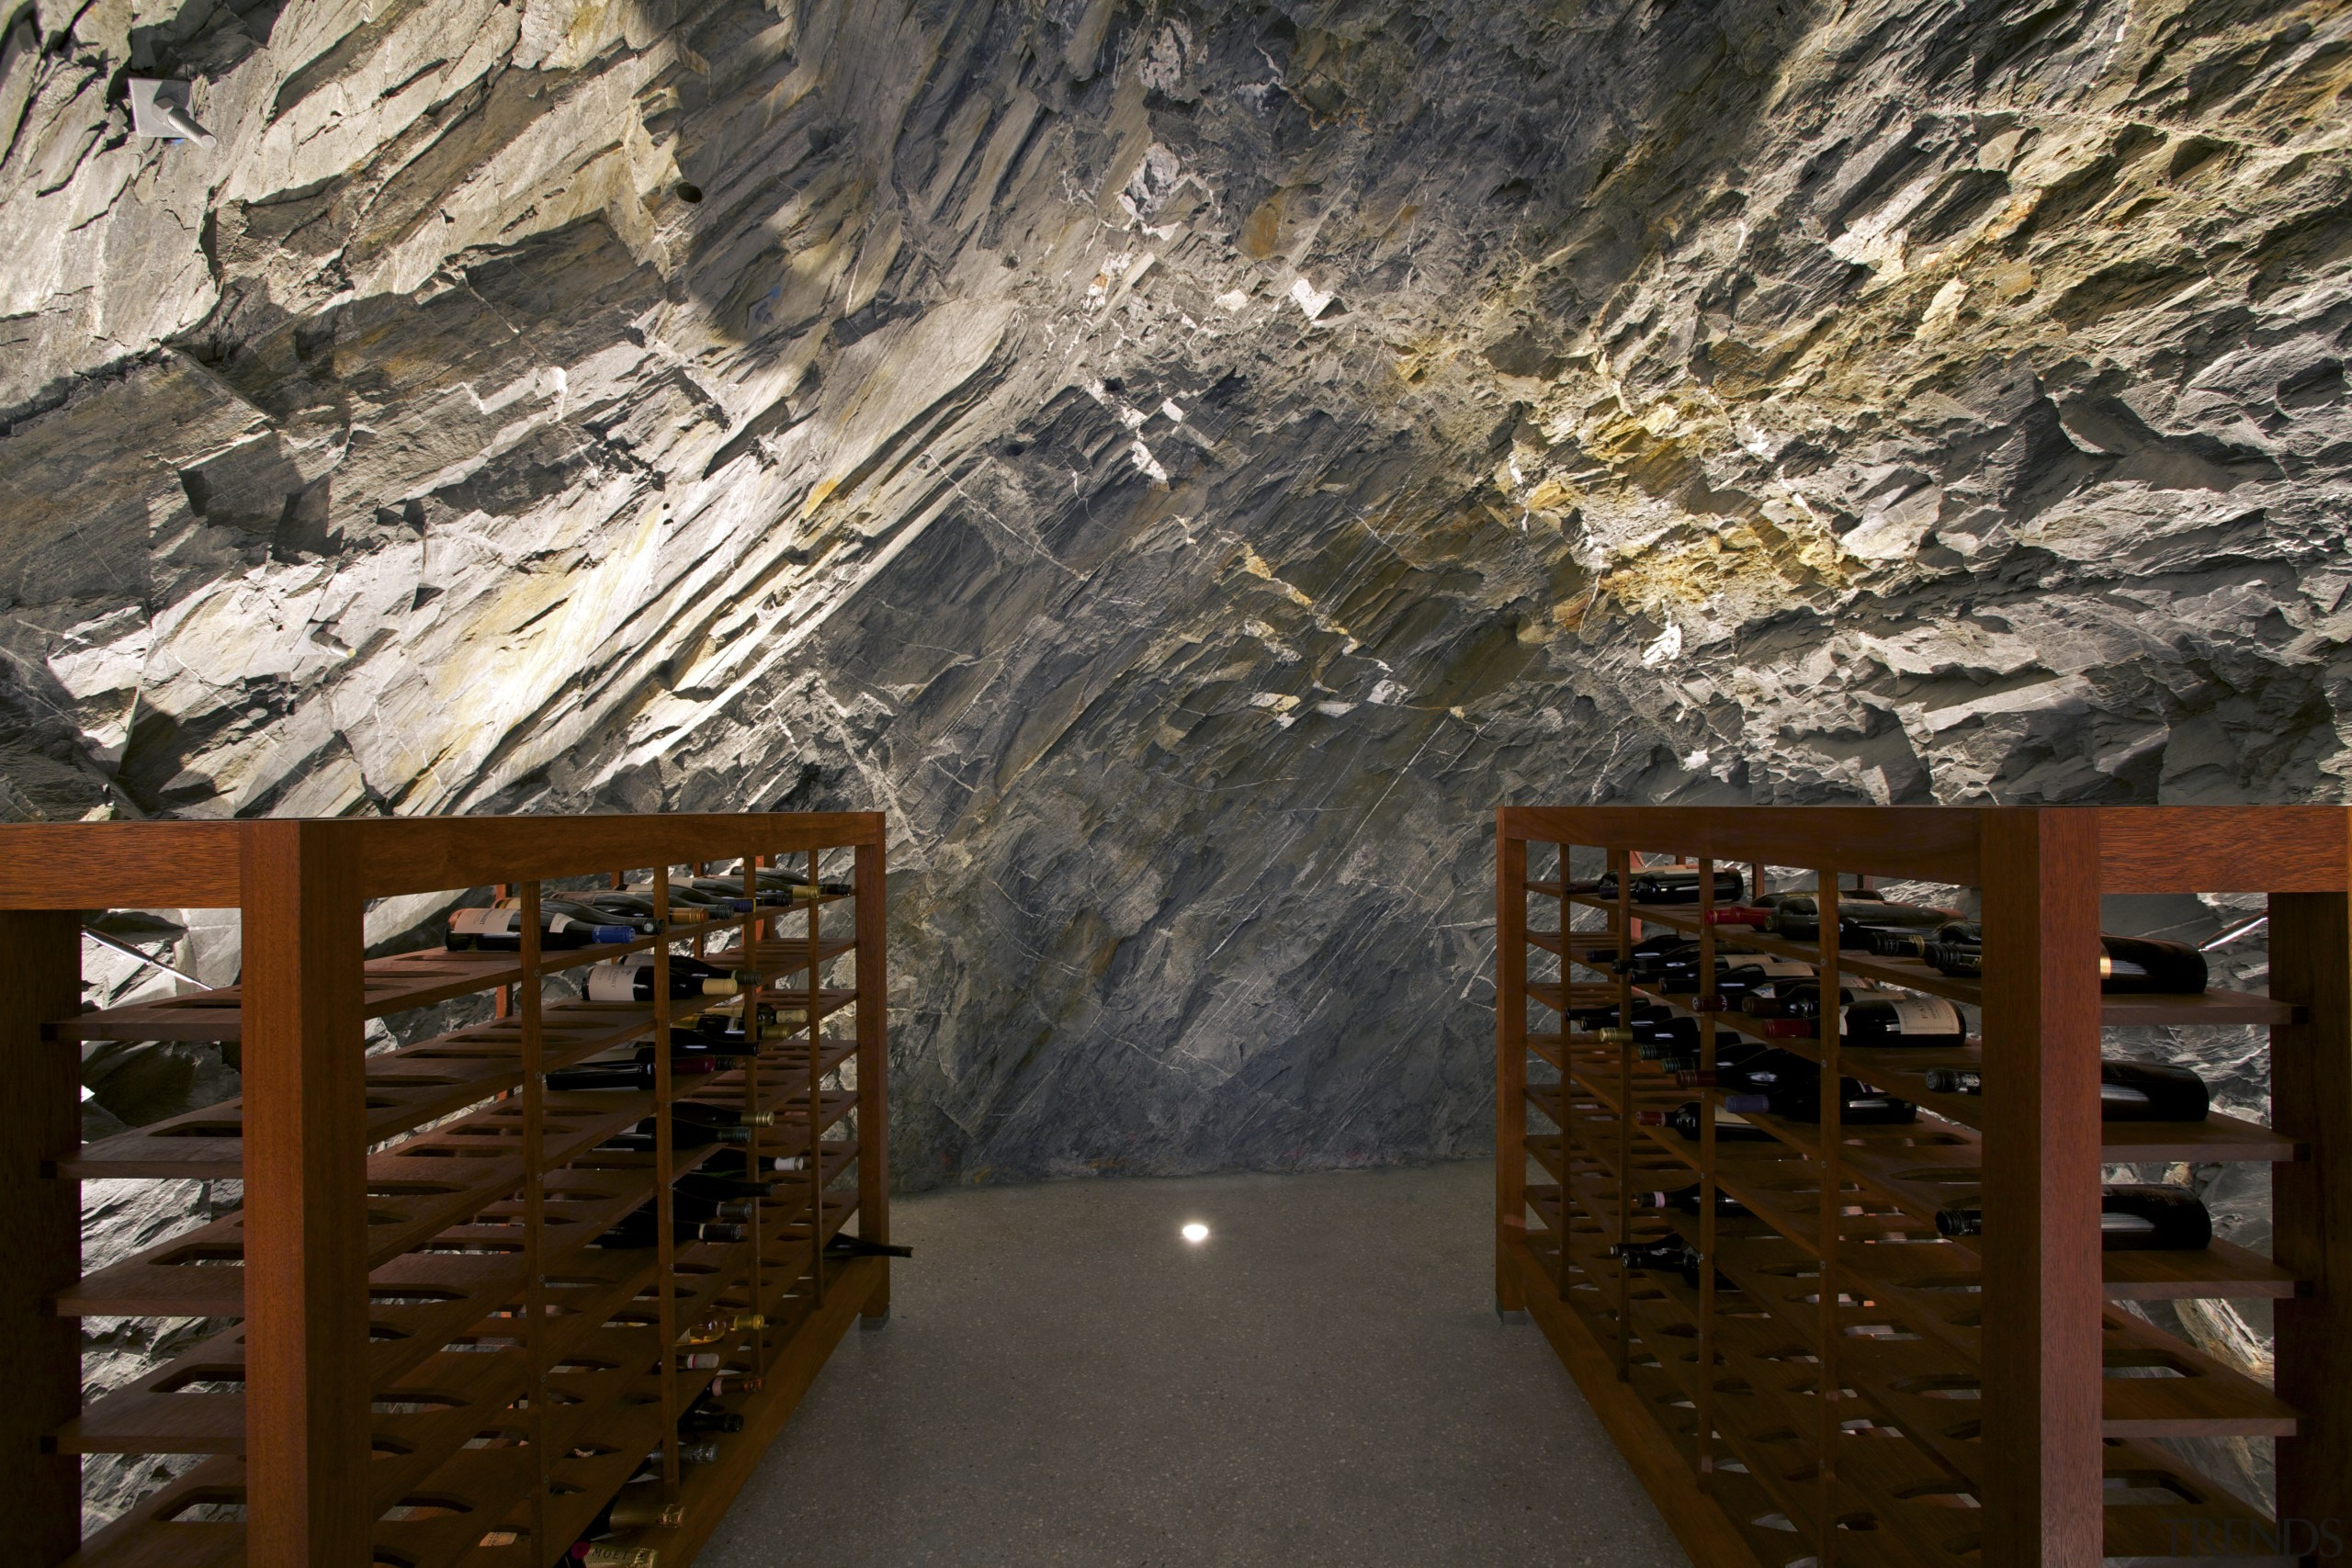 Tunnelled into the rock face, this wine cellar tourist attraction, wood, black, brown